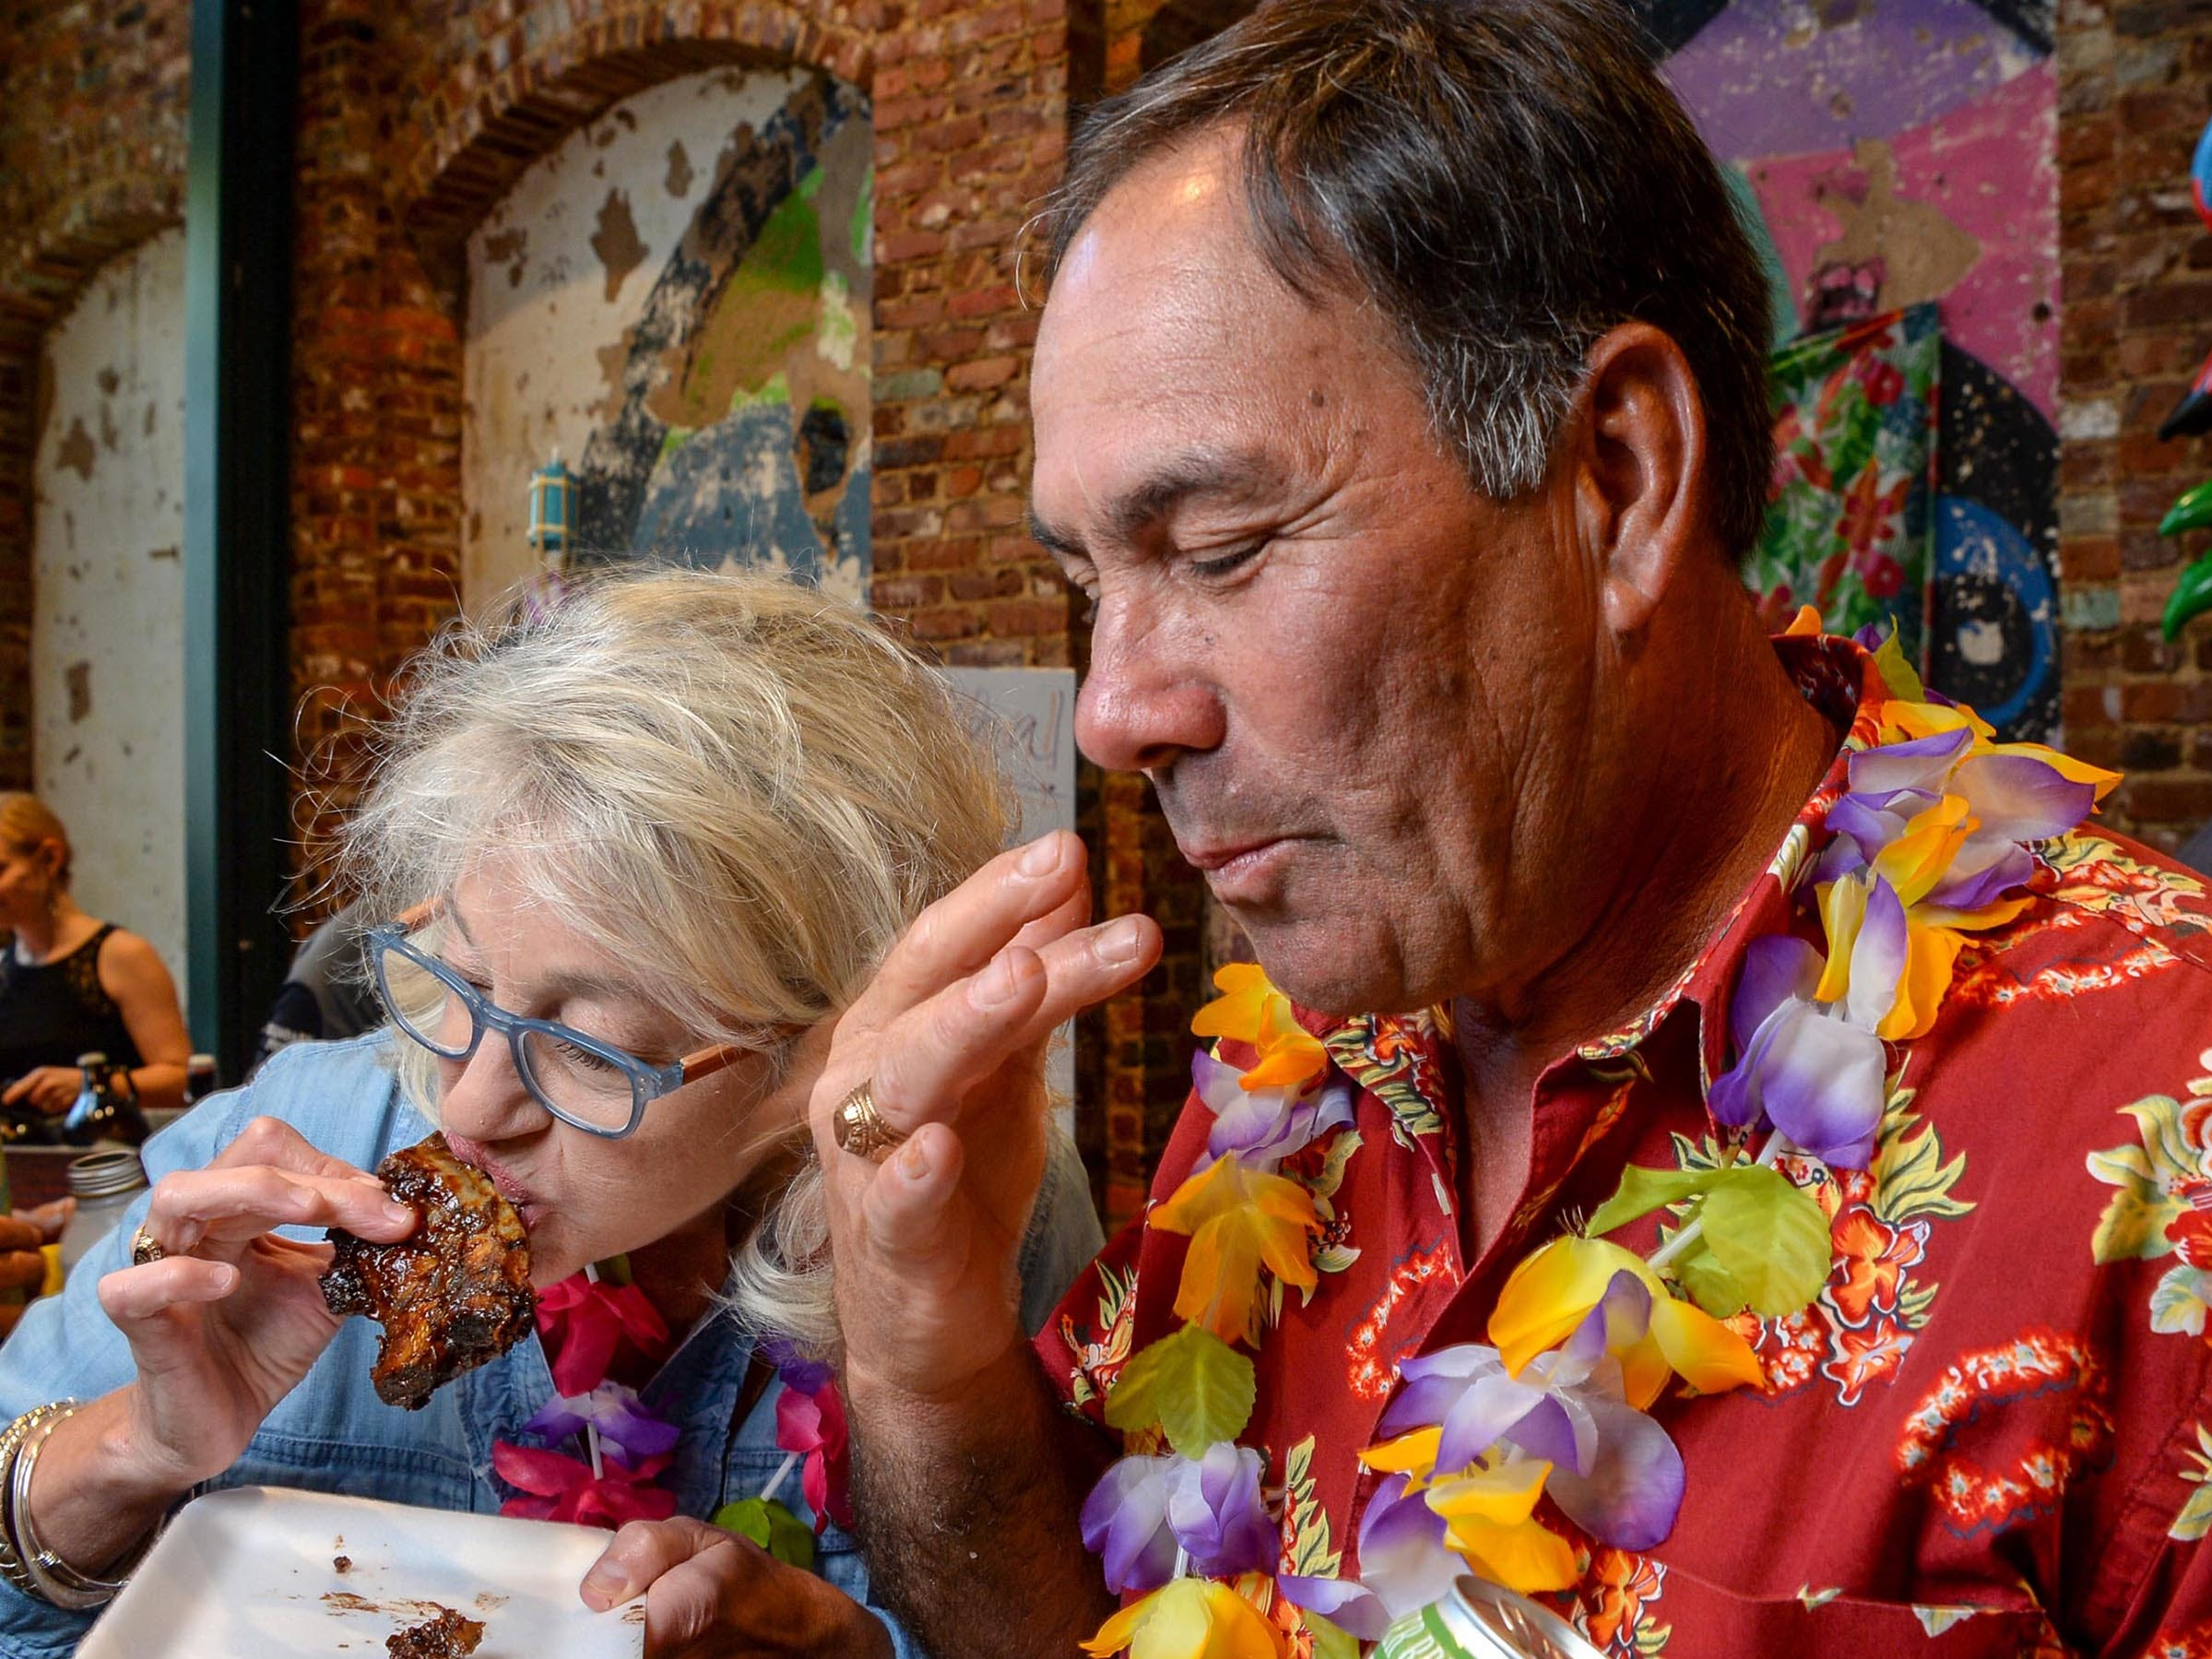 Angela and Randy Reeves of Anderson try the barbecue ribs from Texas Roadhouse at the Anderson Area YMCA Ralph Hayes Toyota Taste of Anderson at The Bleckley Station Tuesday. Proceeds from the Aloha theme party benefit programs and services of the Anderson Area YMCA.